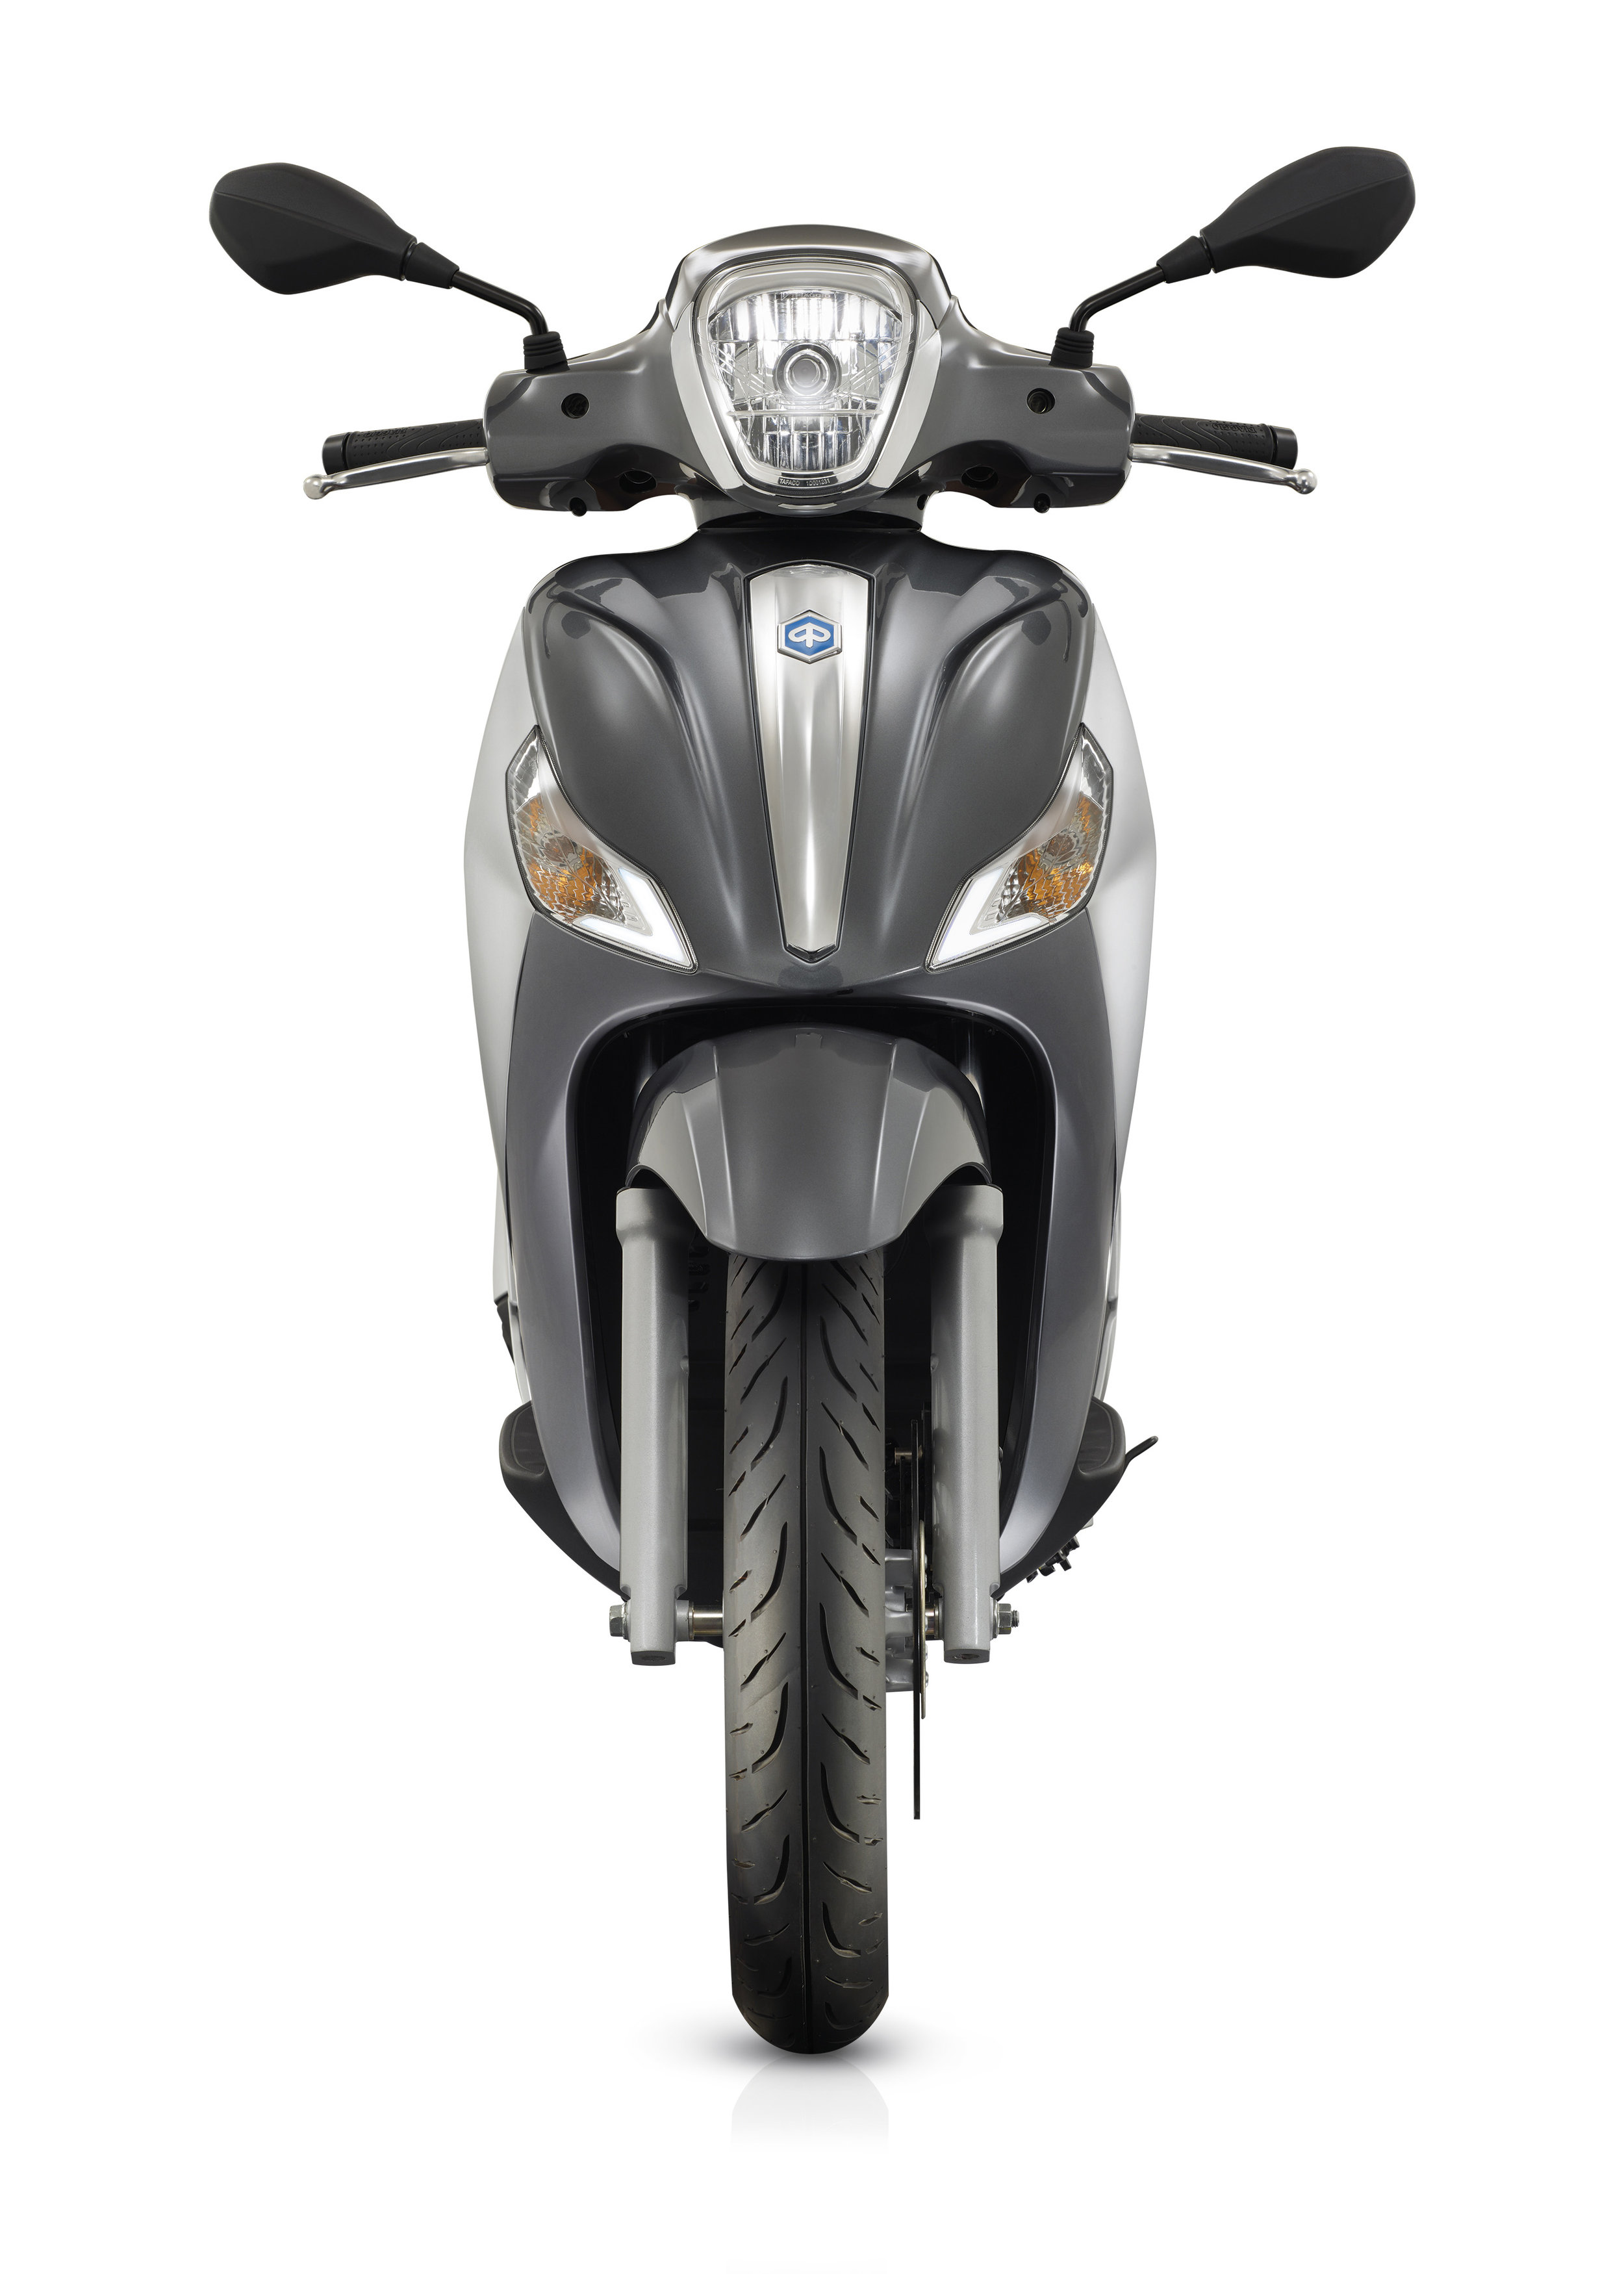 Piaggio Medley 125 equipped lateral dx 11.jpg